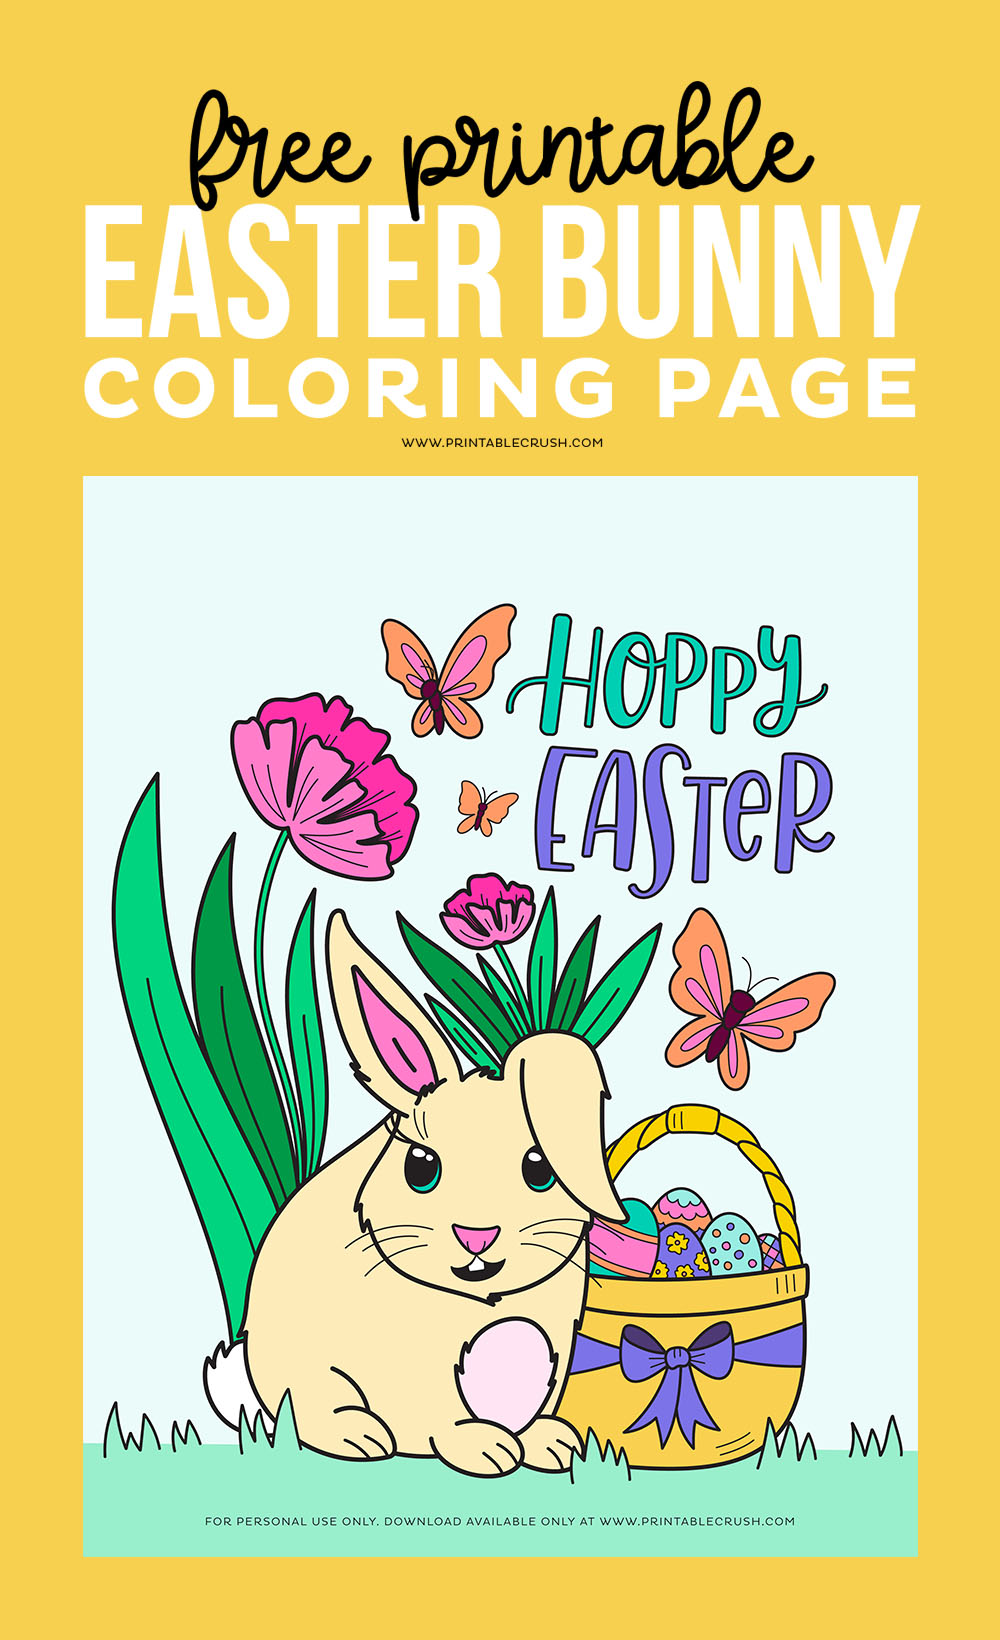 Free Printable Easter Bunny Coloring Page - Free Coloring Page for Easter - Easter Bunny Coloring - Printable Crush